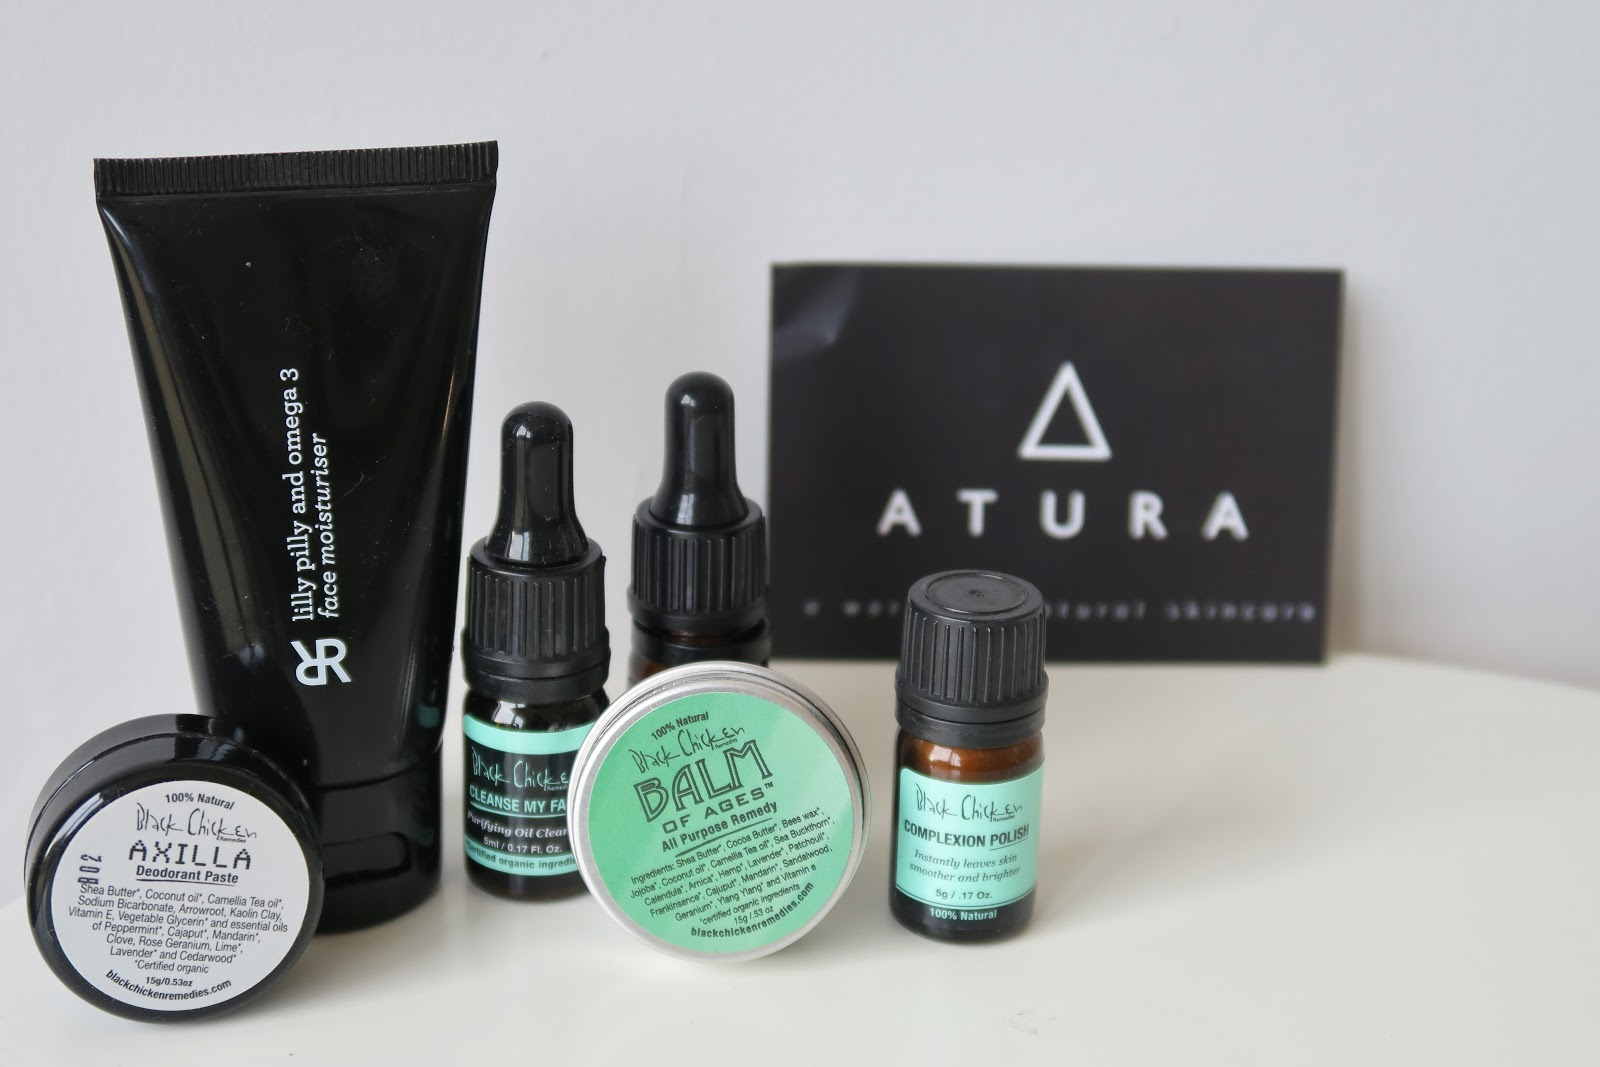 http://www.thisnaturalbee.co.uk/2017/10/atura-collective.html